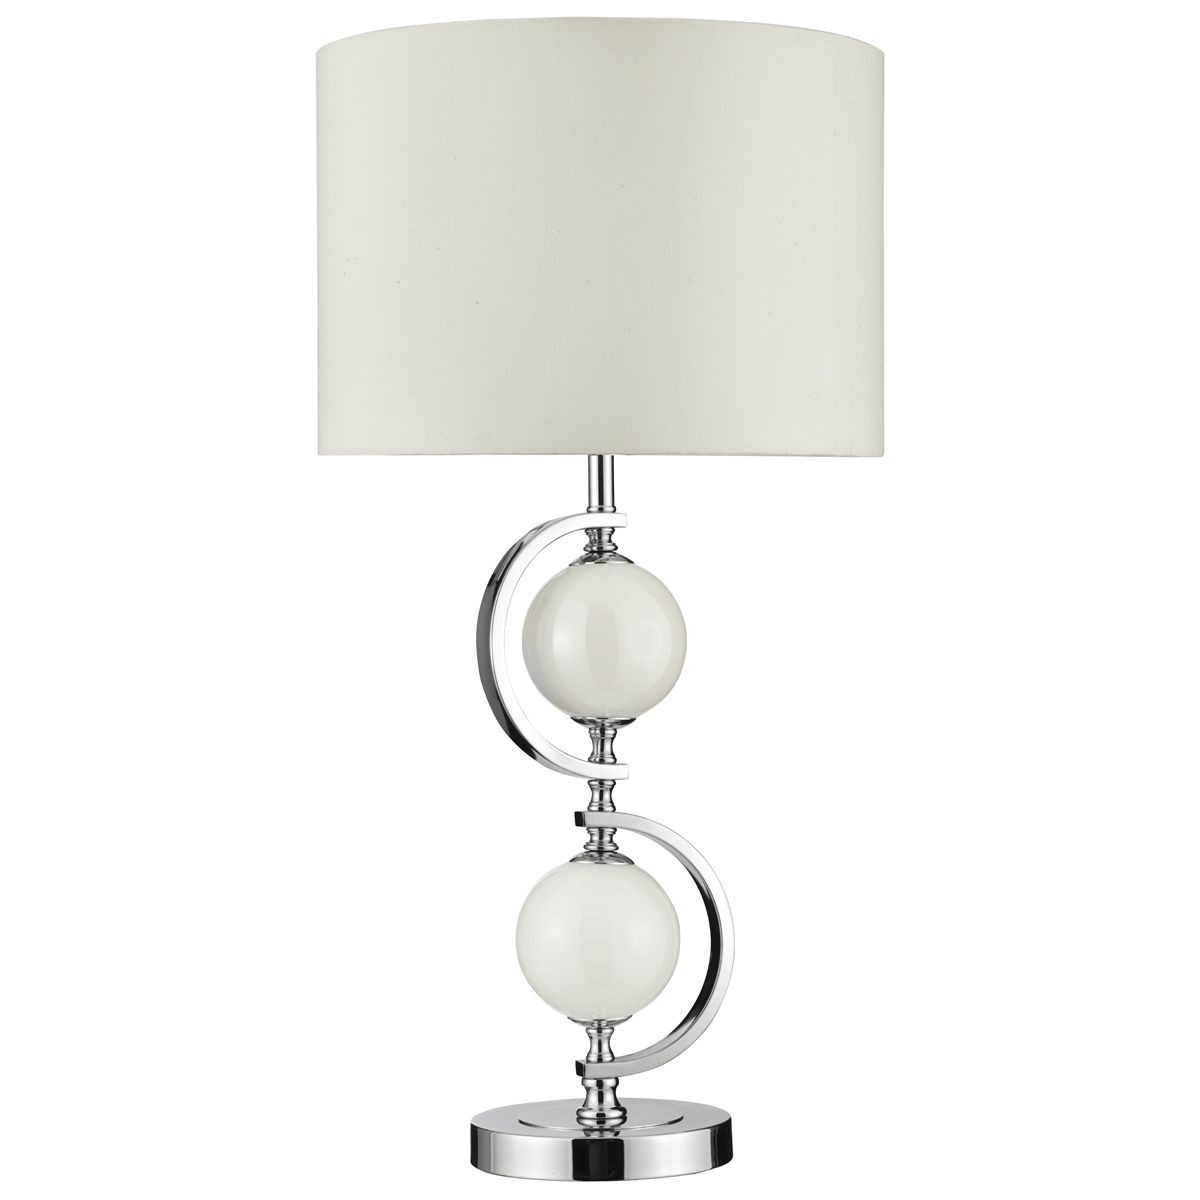 Modern Table Lamps Uk Contemporary Table Lamp Chrome And Glass Complete With Shade